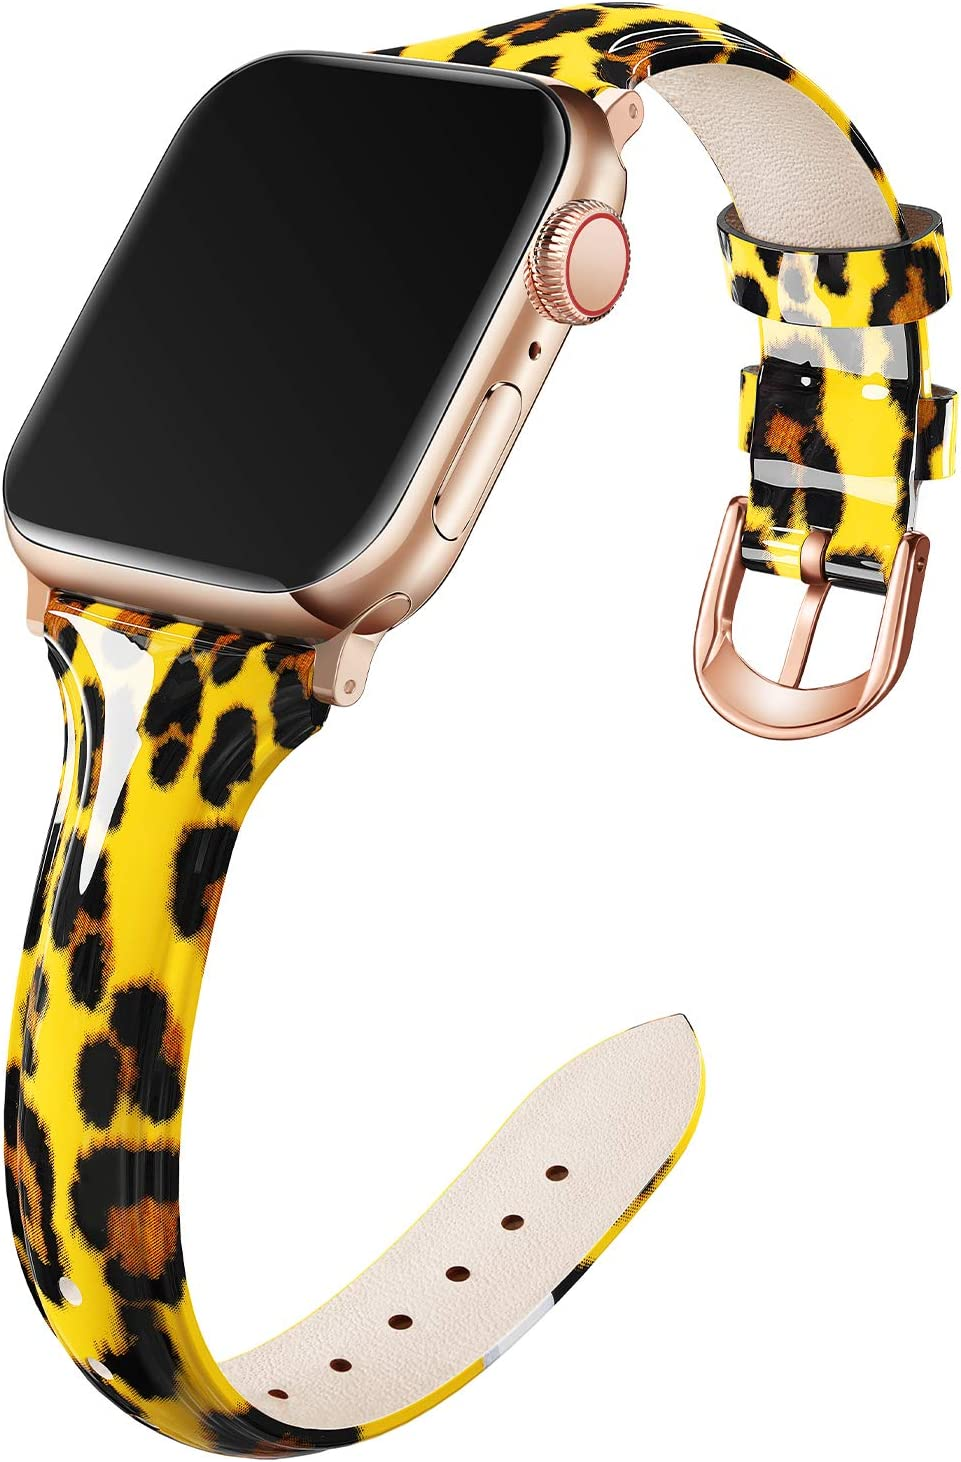 Adepoy Compatible for Apple Watch Bands 38mm 40mm, Non-Fade Slim Genuine Patent Leather Wristband for Women Apple iWatch Series Se/6/5/4/3/2/1, Yellow Leopard